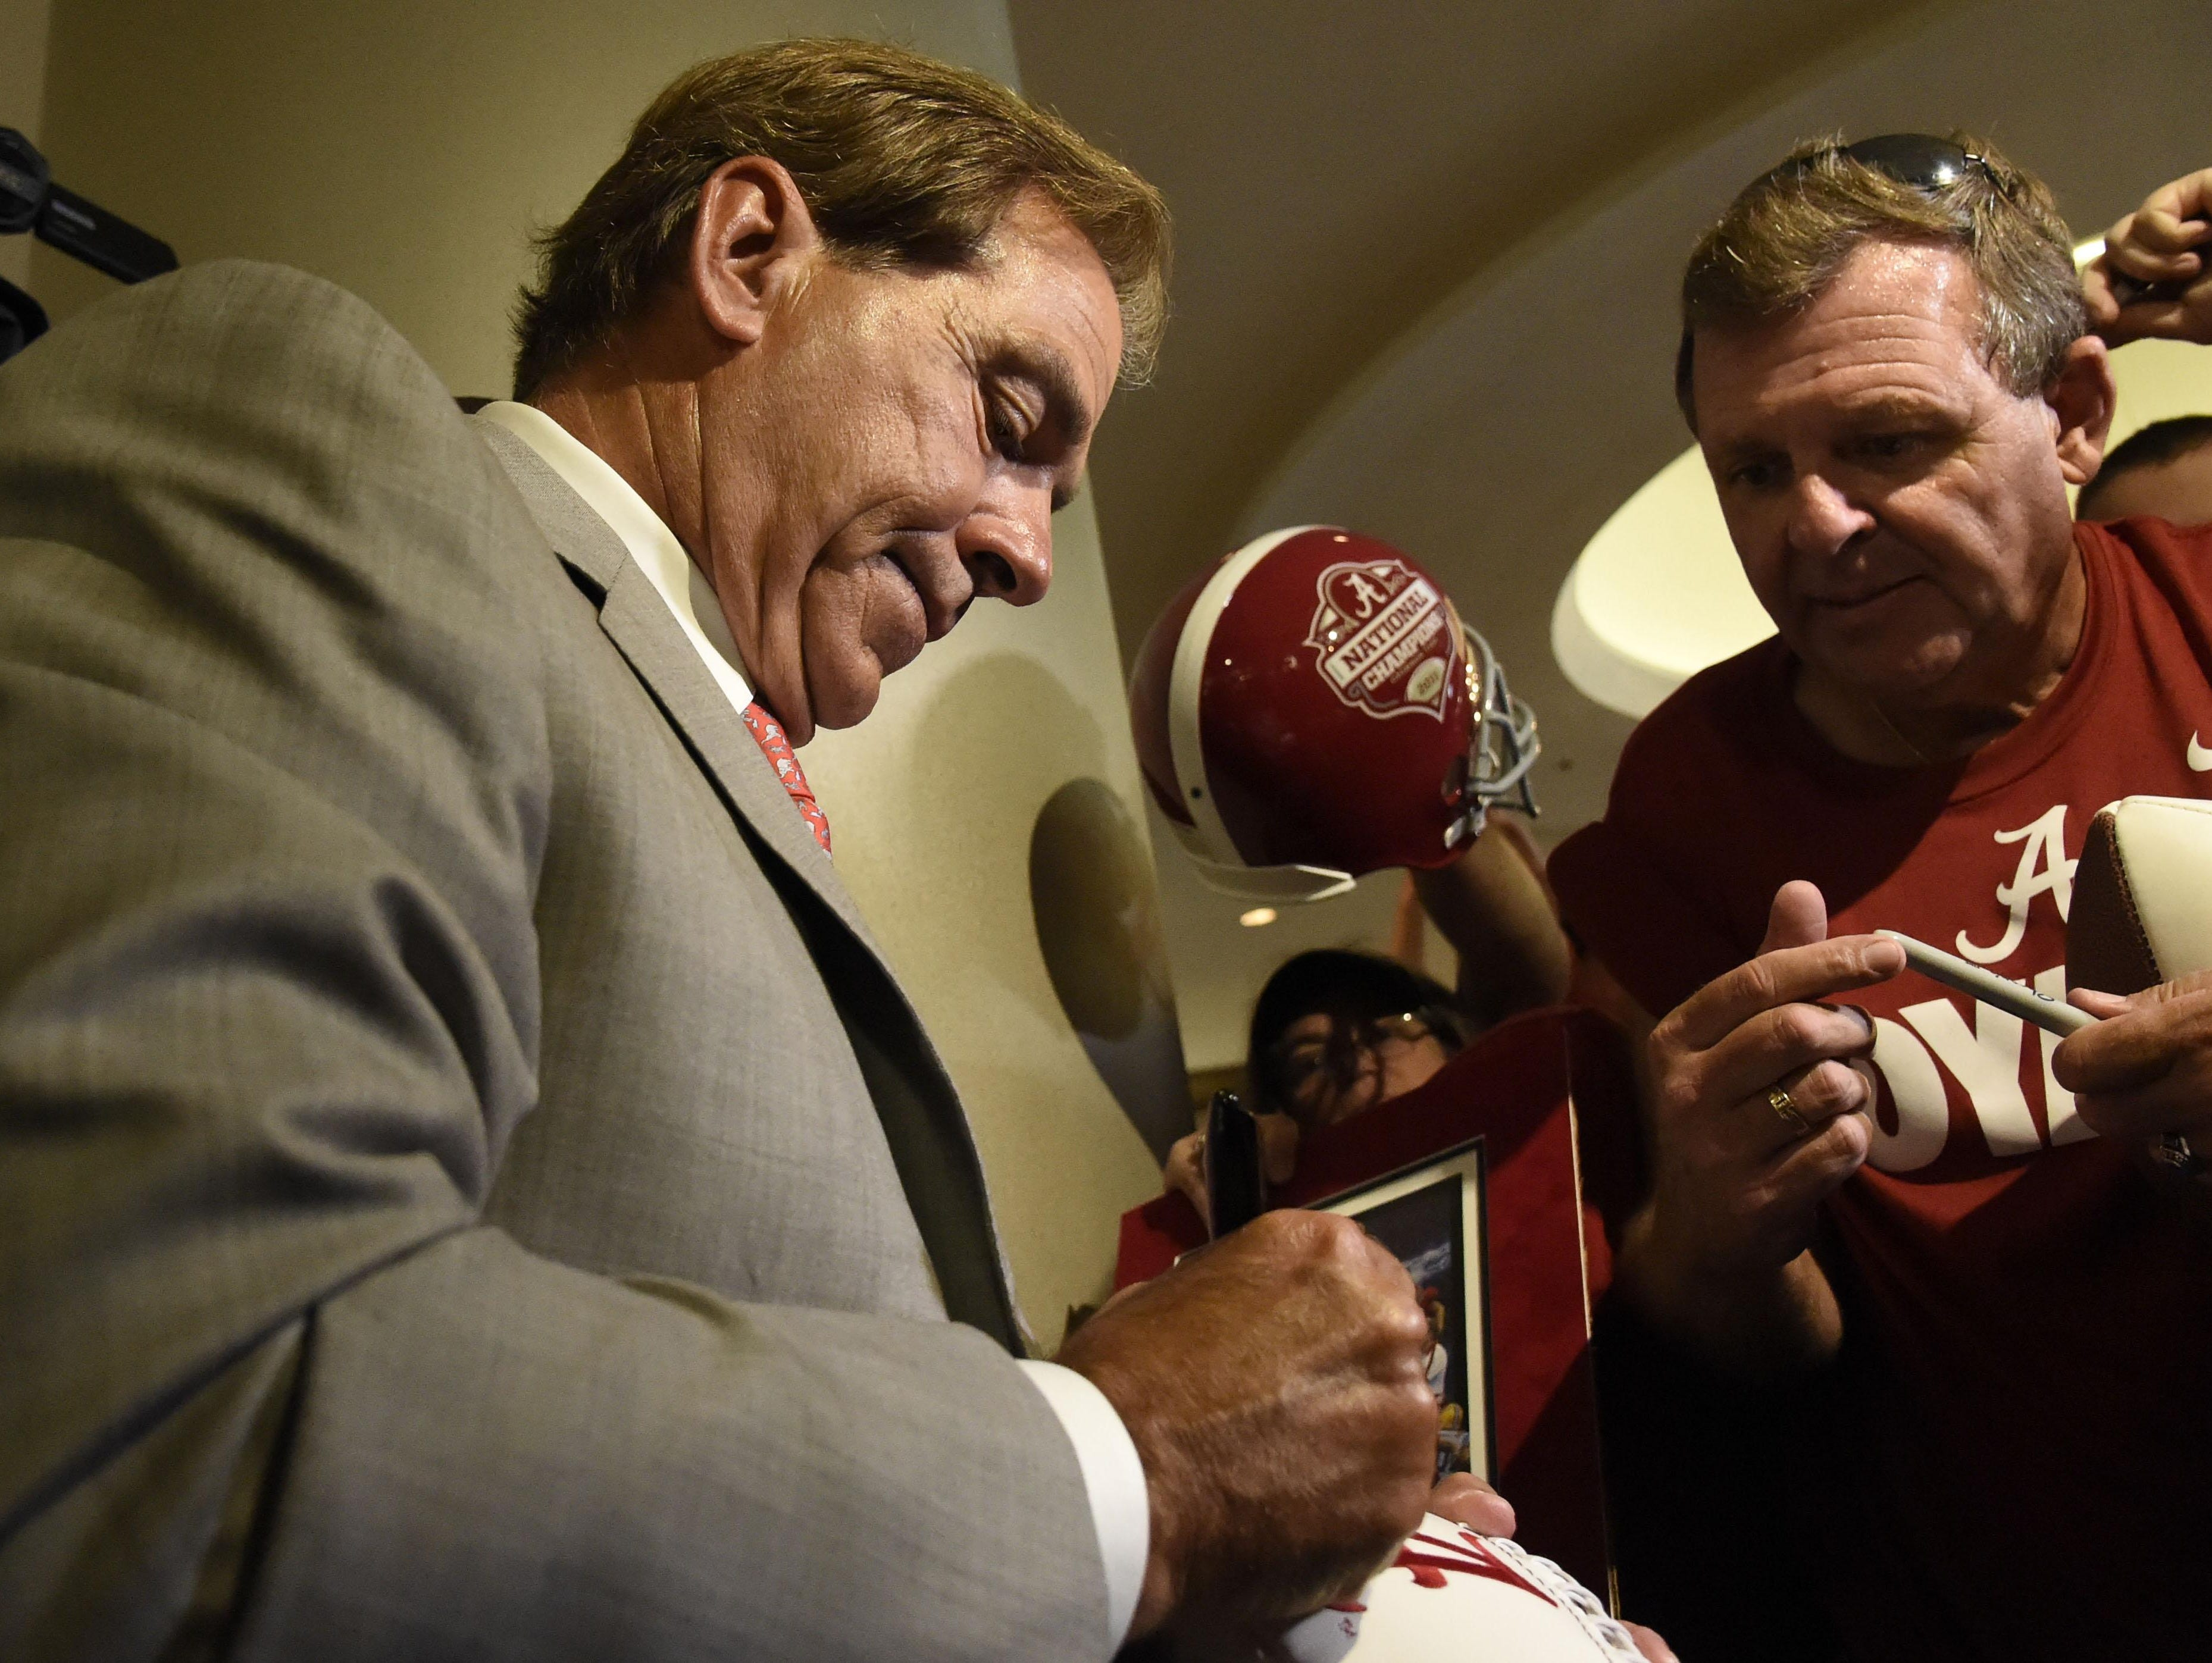 Alabama's Nick Saban remains the highest-paid coach in college football at $7.3 million a season, but the expectations to win are enormous for the Crimson Tide.